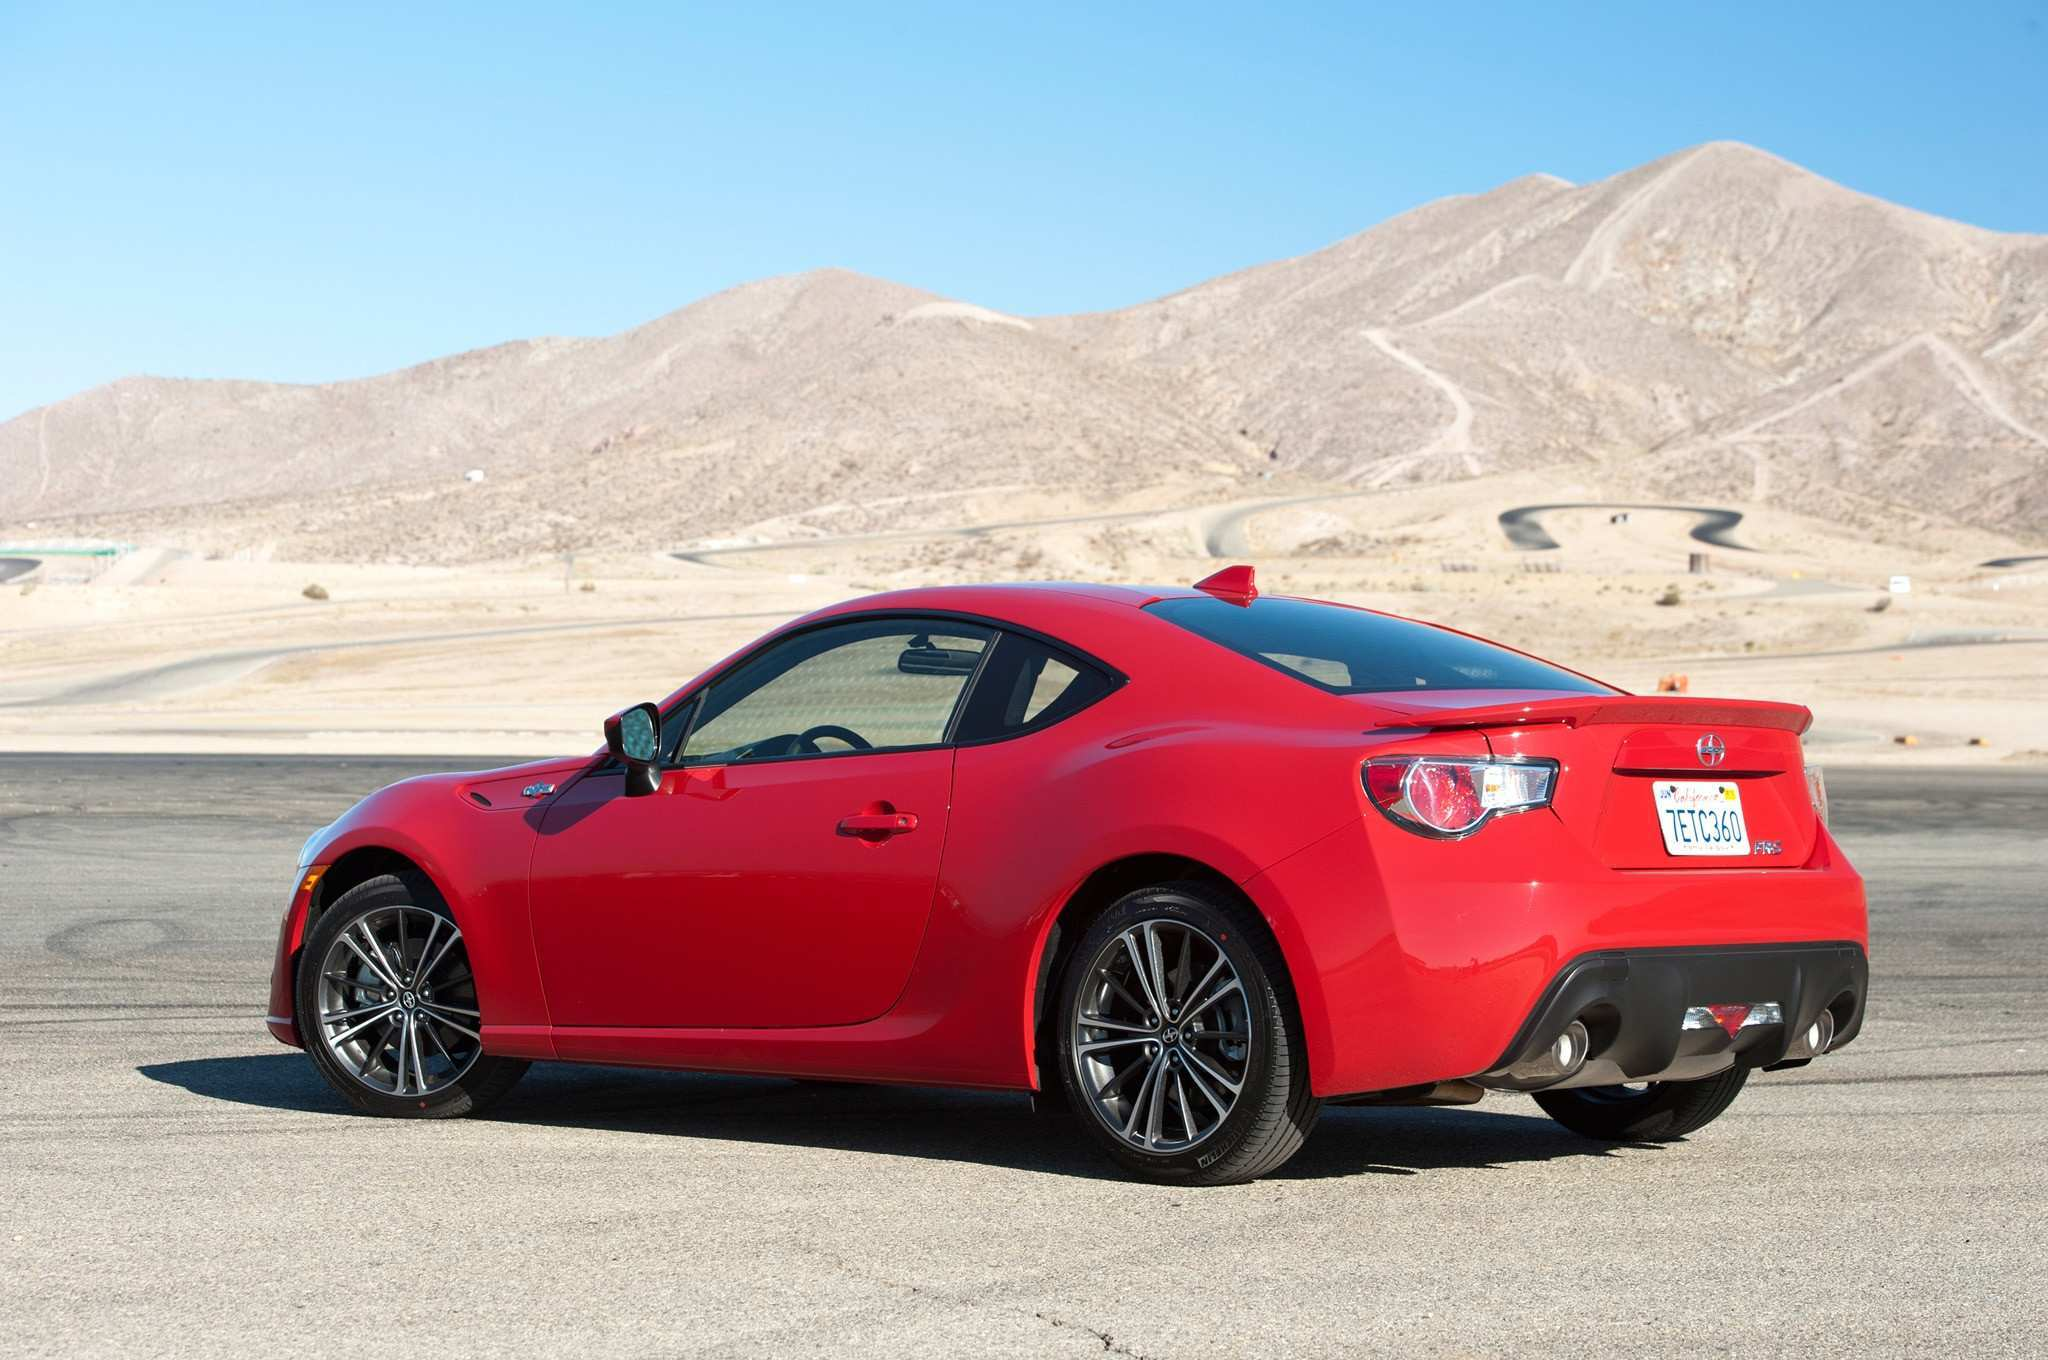 64 New 2020 Scion Frs Review for 2020 Scion Frs